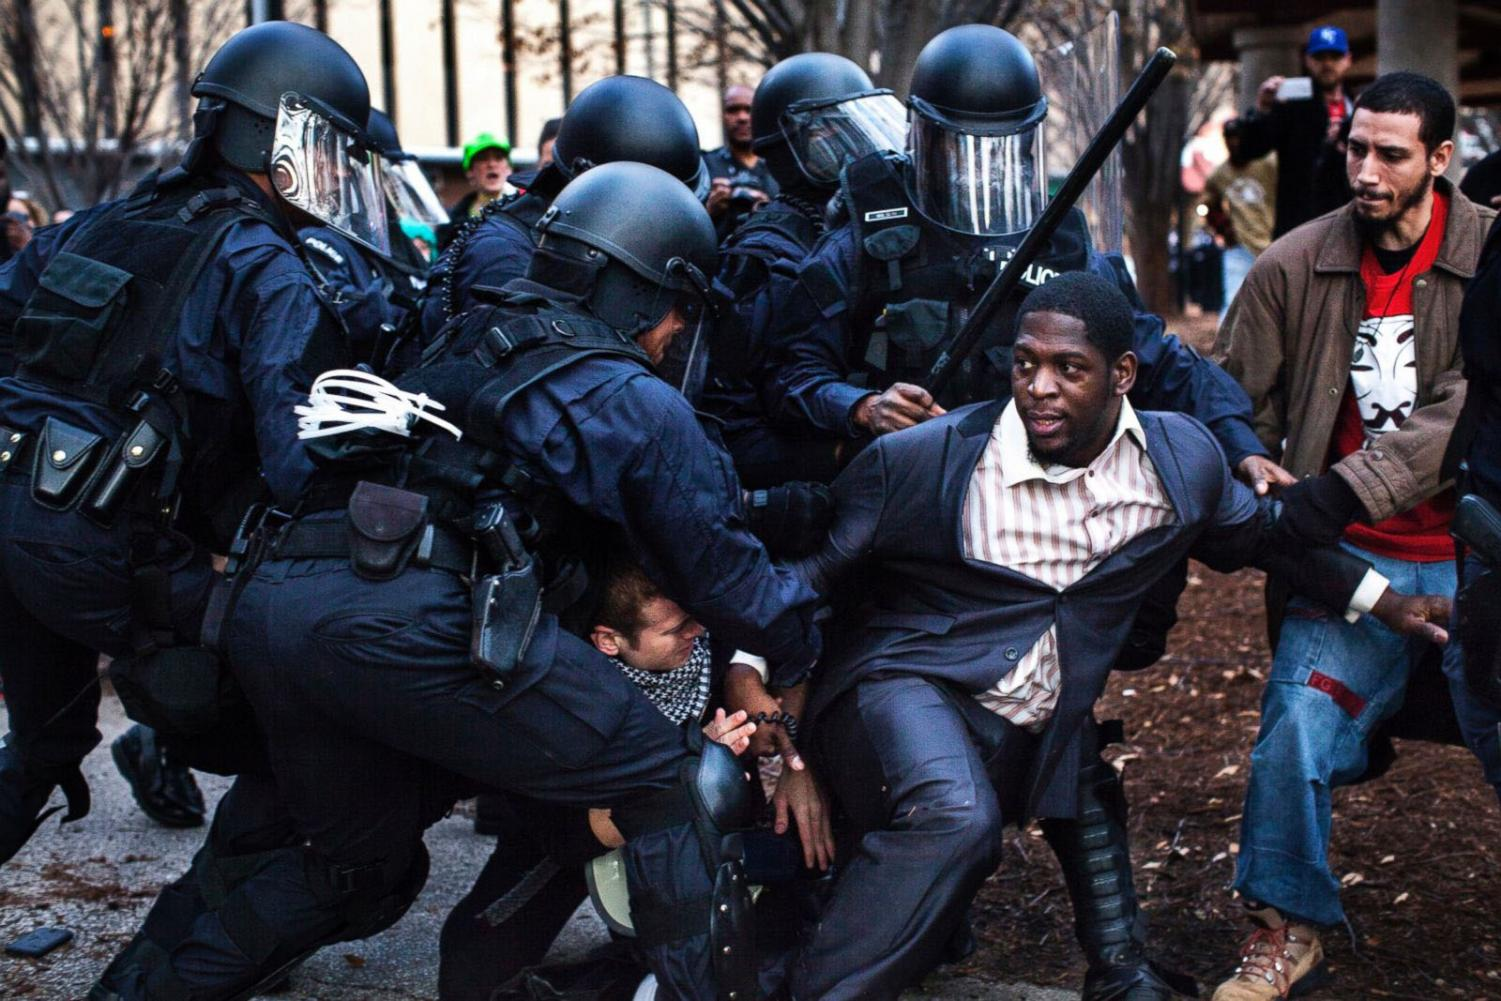 Bishop Derrick Robinson, who became a notable leader among the Ferguson protesters, was arrested by riot police while protesting in a public park (St. Louis, November 30, 2014).